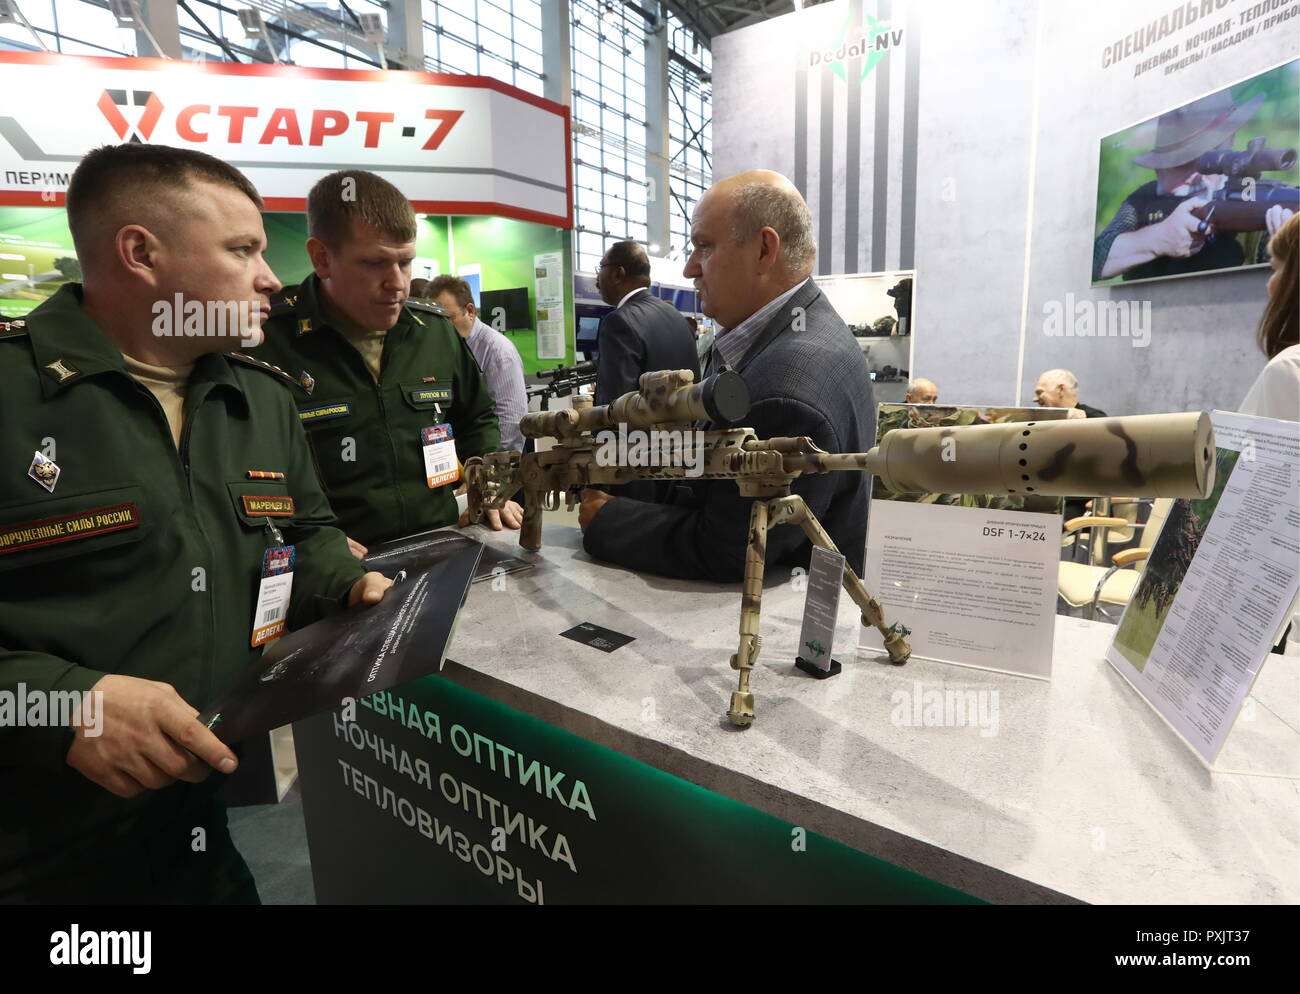 Moscow, Russia. 23rd Oct, 2018. MOSCOW, RUSSIA - OCTOBER 23, 2018: A Dedal DHF 1-7x24 daytime scope at the Interpolitex 2018 International Exhibition of Means of State Security Provision held at Moscow's VDNKh Exhibition Centre. Stanislav Krasilnikov/TASS Credit: ITAR-TASS News Agency/Alamy Live News Stock Photo